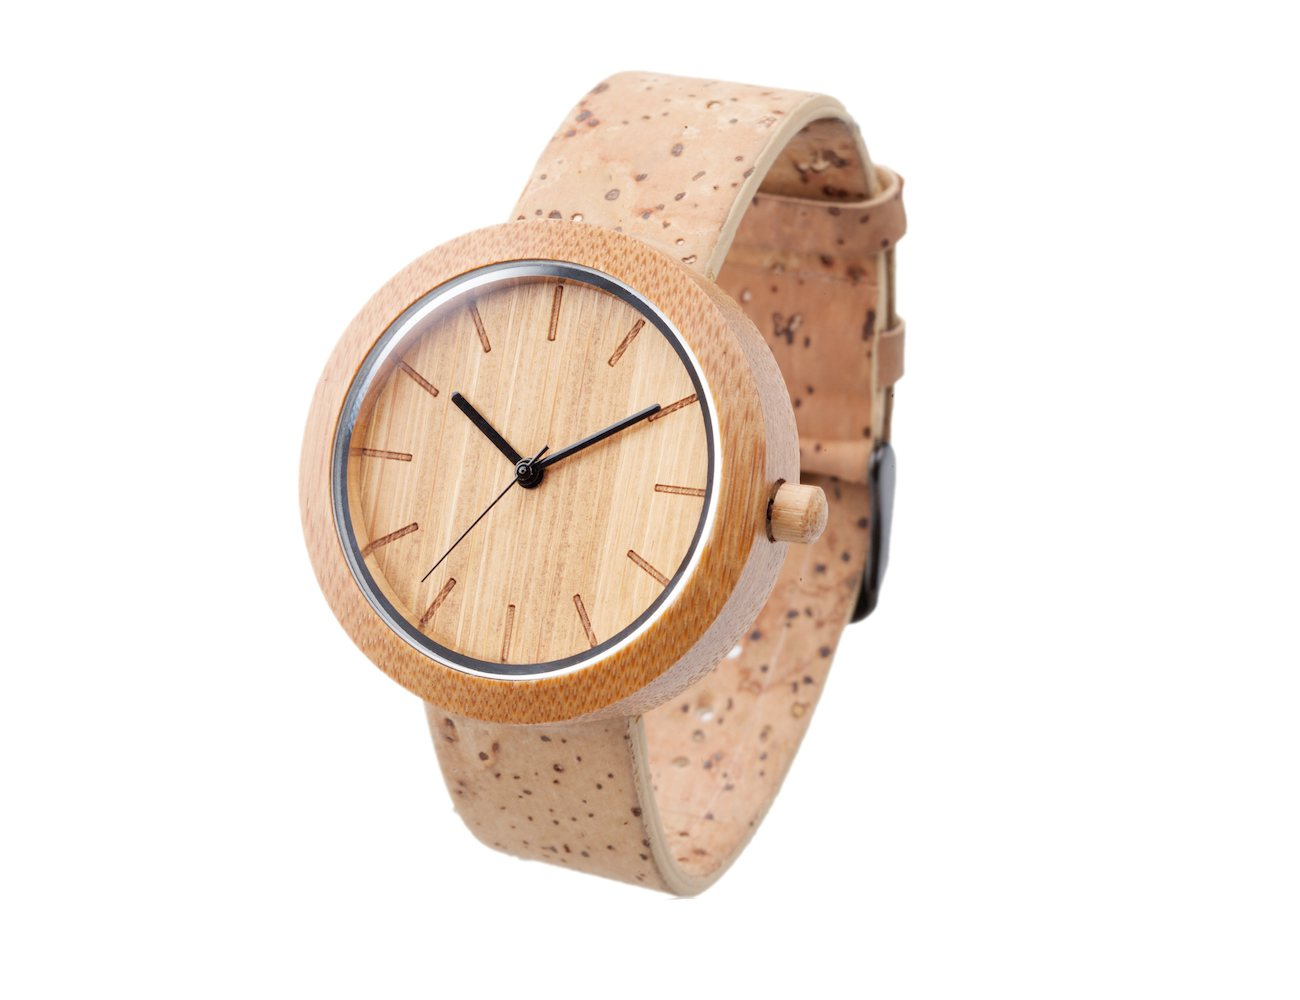 Panda Bamboo Watch with Cork Strap